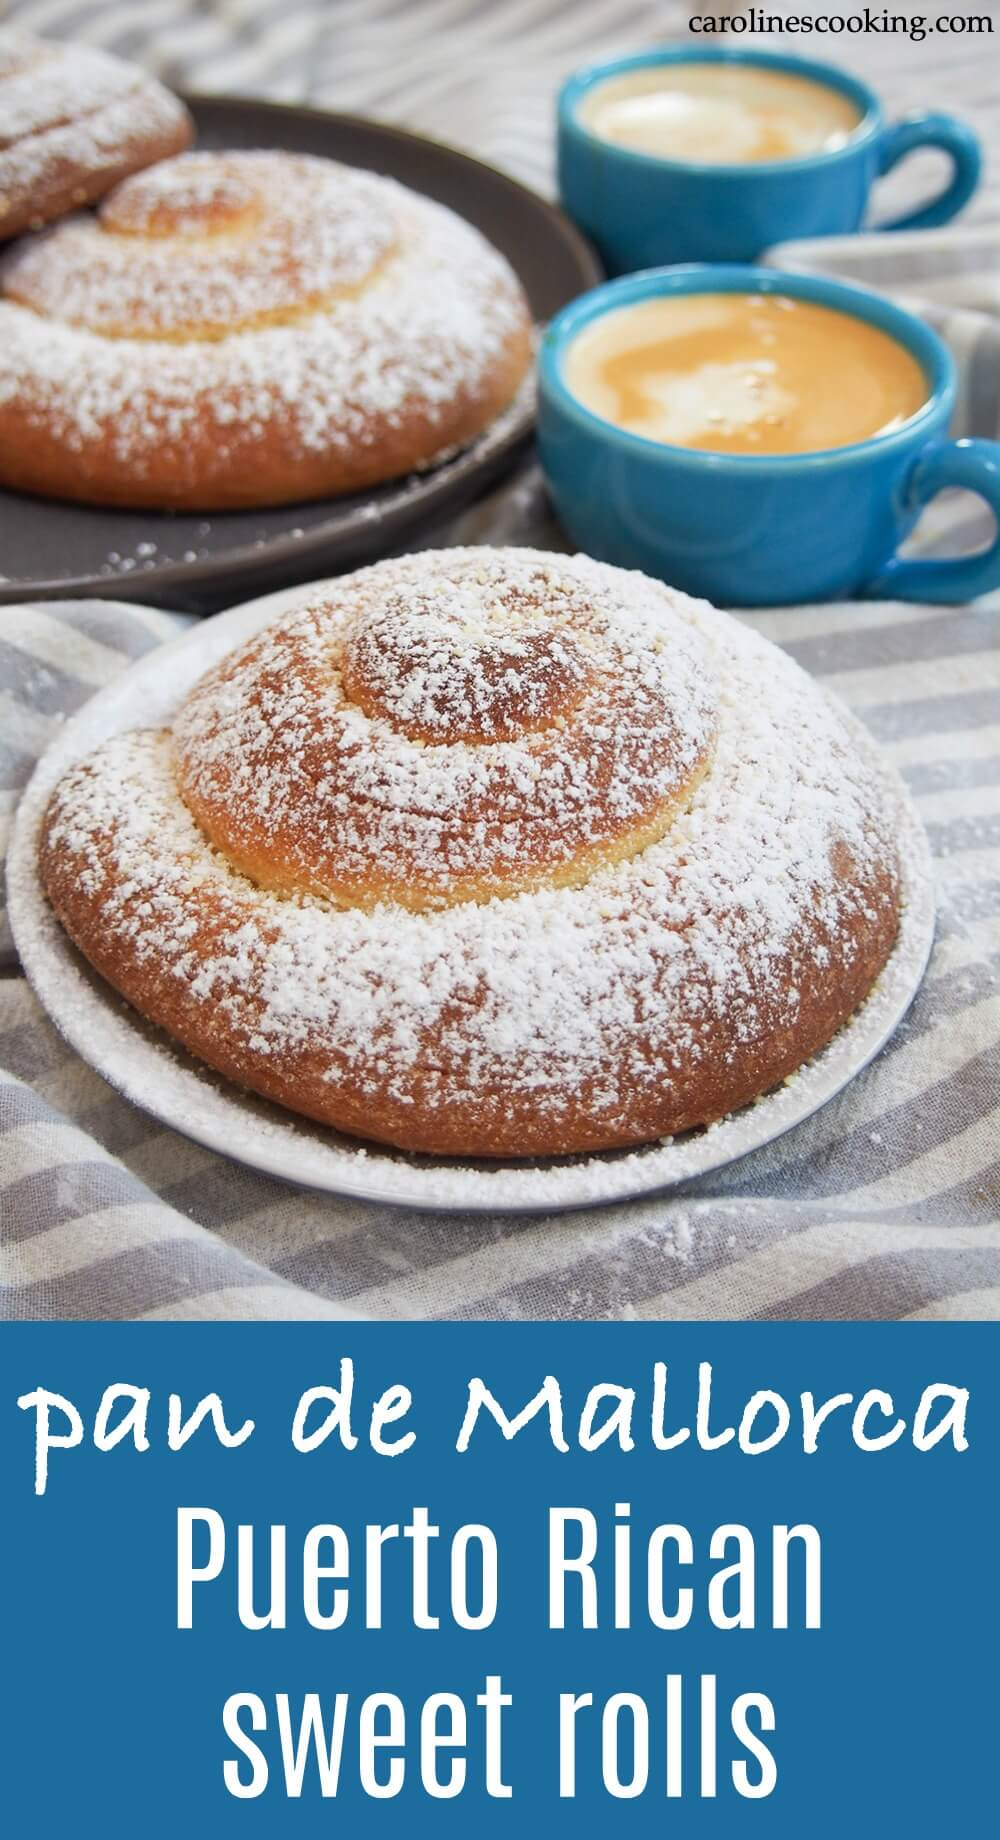 Pan de Mallorca are an egg-rich but light-textured, gently sweet bread roll from Puerto Rico. They're easy to recognize, coiled up and dusted with sugar, and make a delicious breakfast or snack. #sweetroll #puertoricanfood #bread #homemadebread